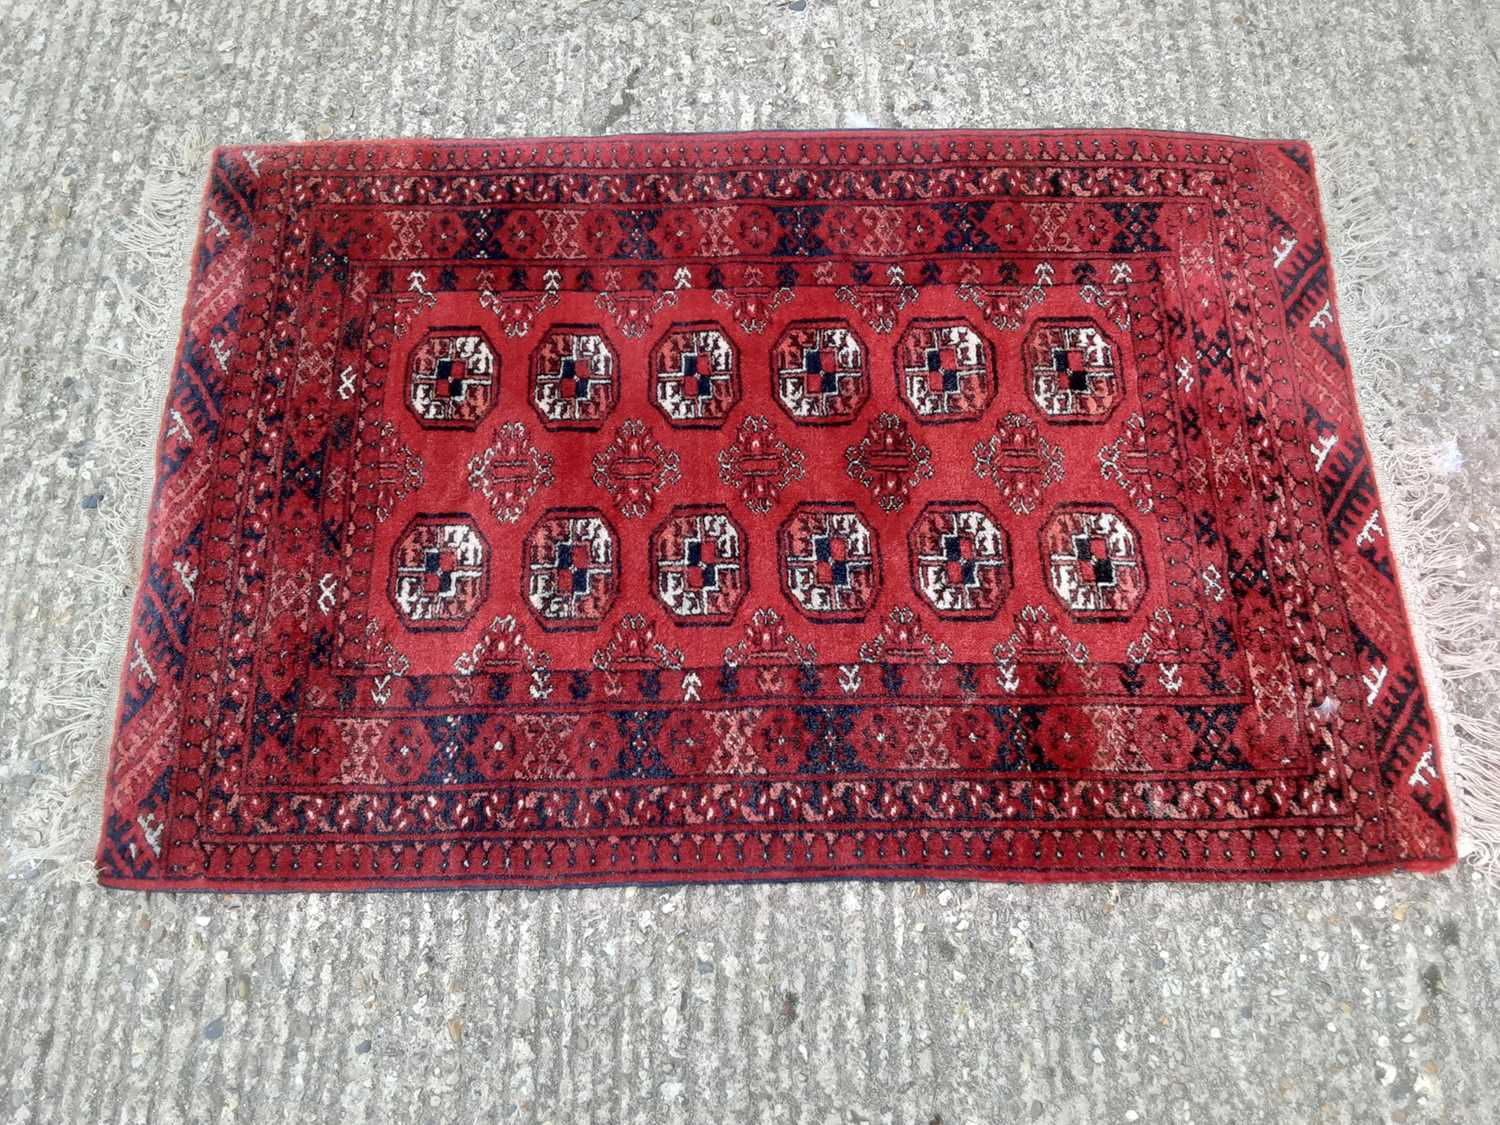 Eastern rug with geometric decoration on red ground, 120cm x 82cm